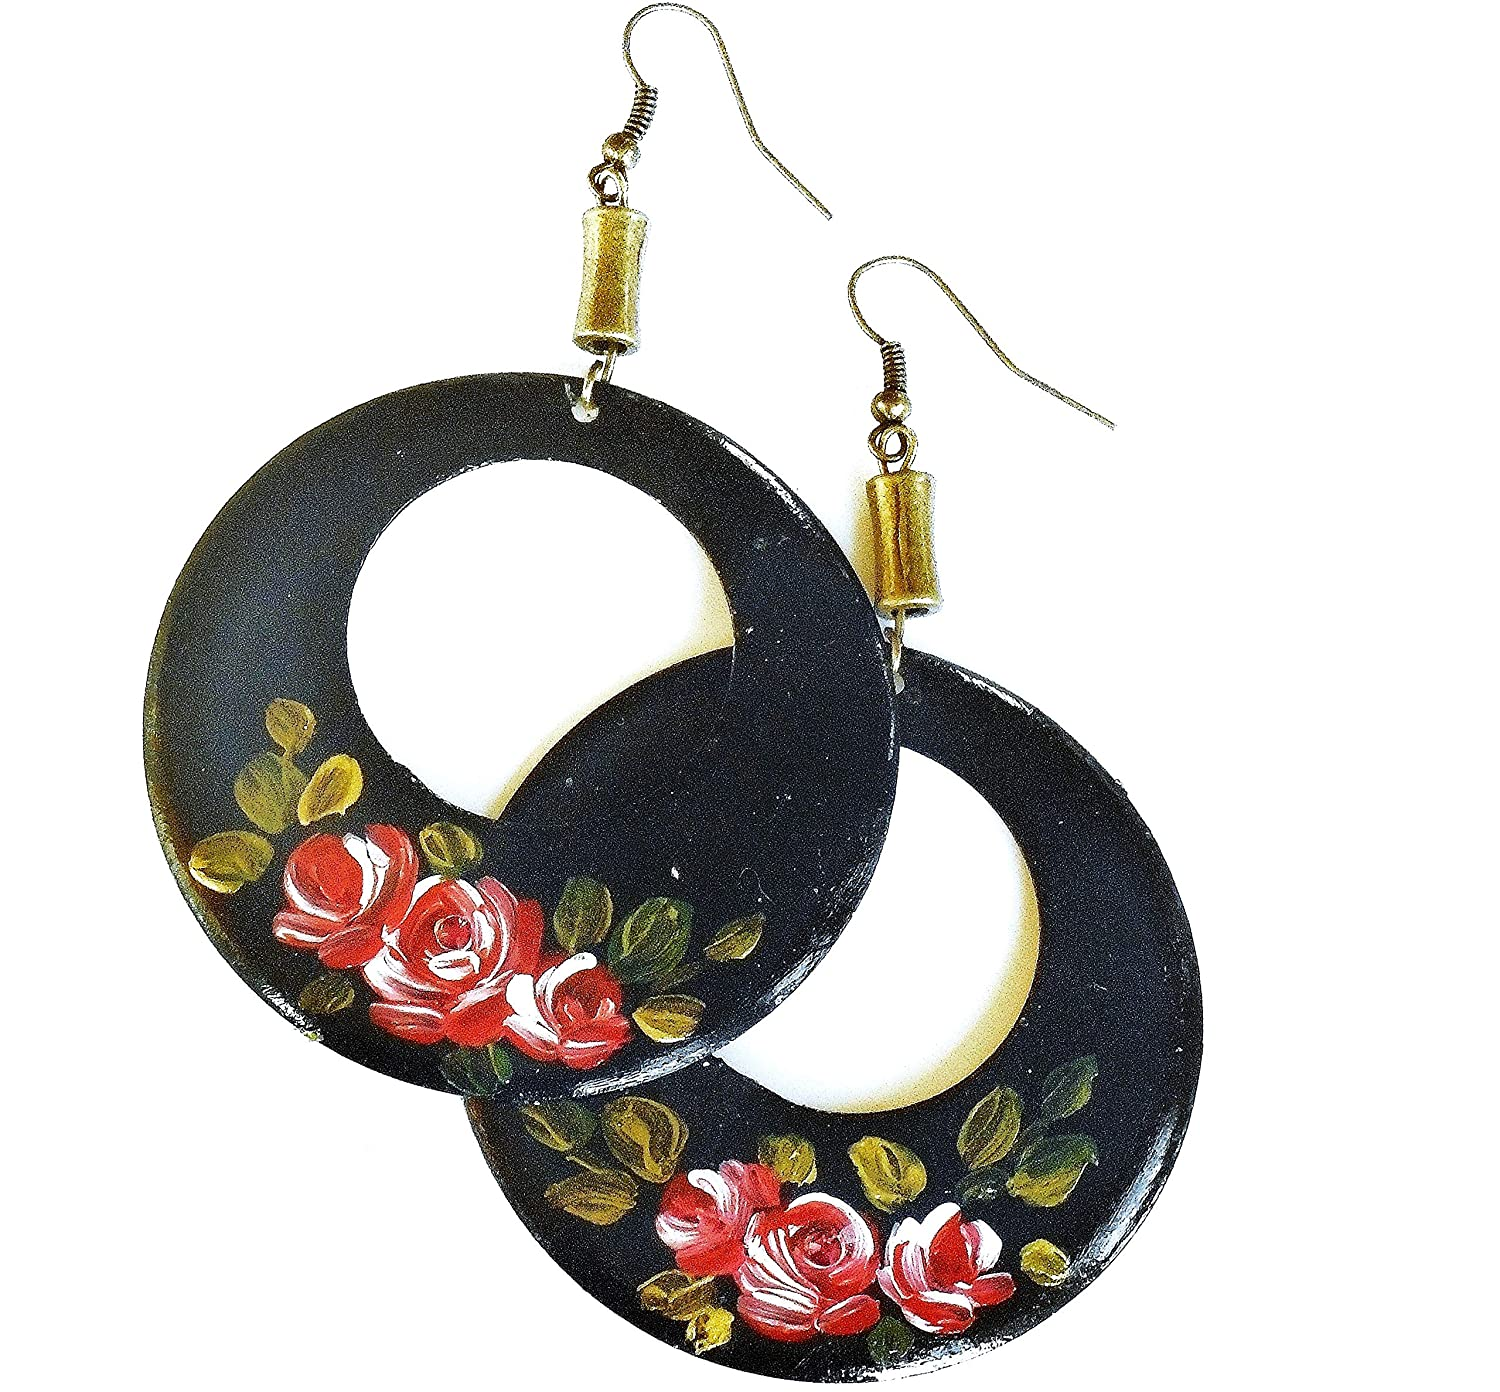 Large Store Black Hoop Earrings with Hand Roses and Painted Sparkl Red